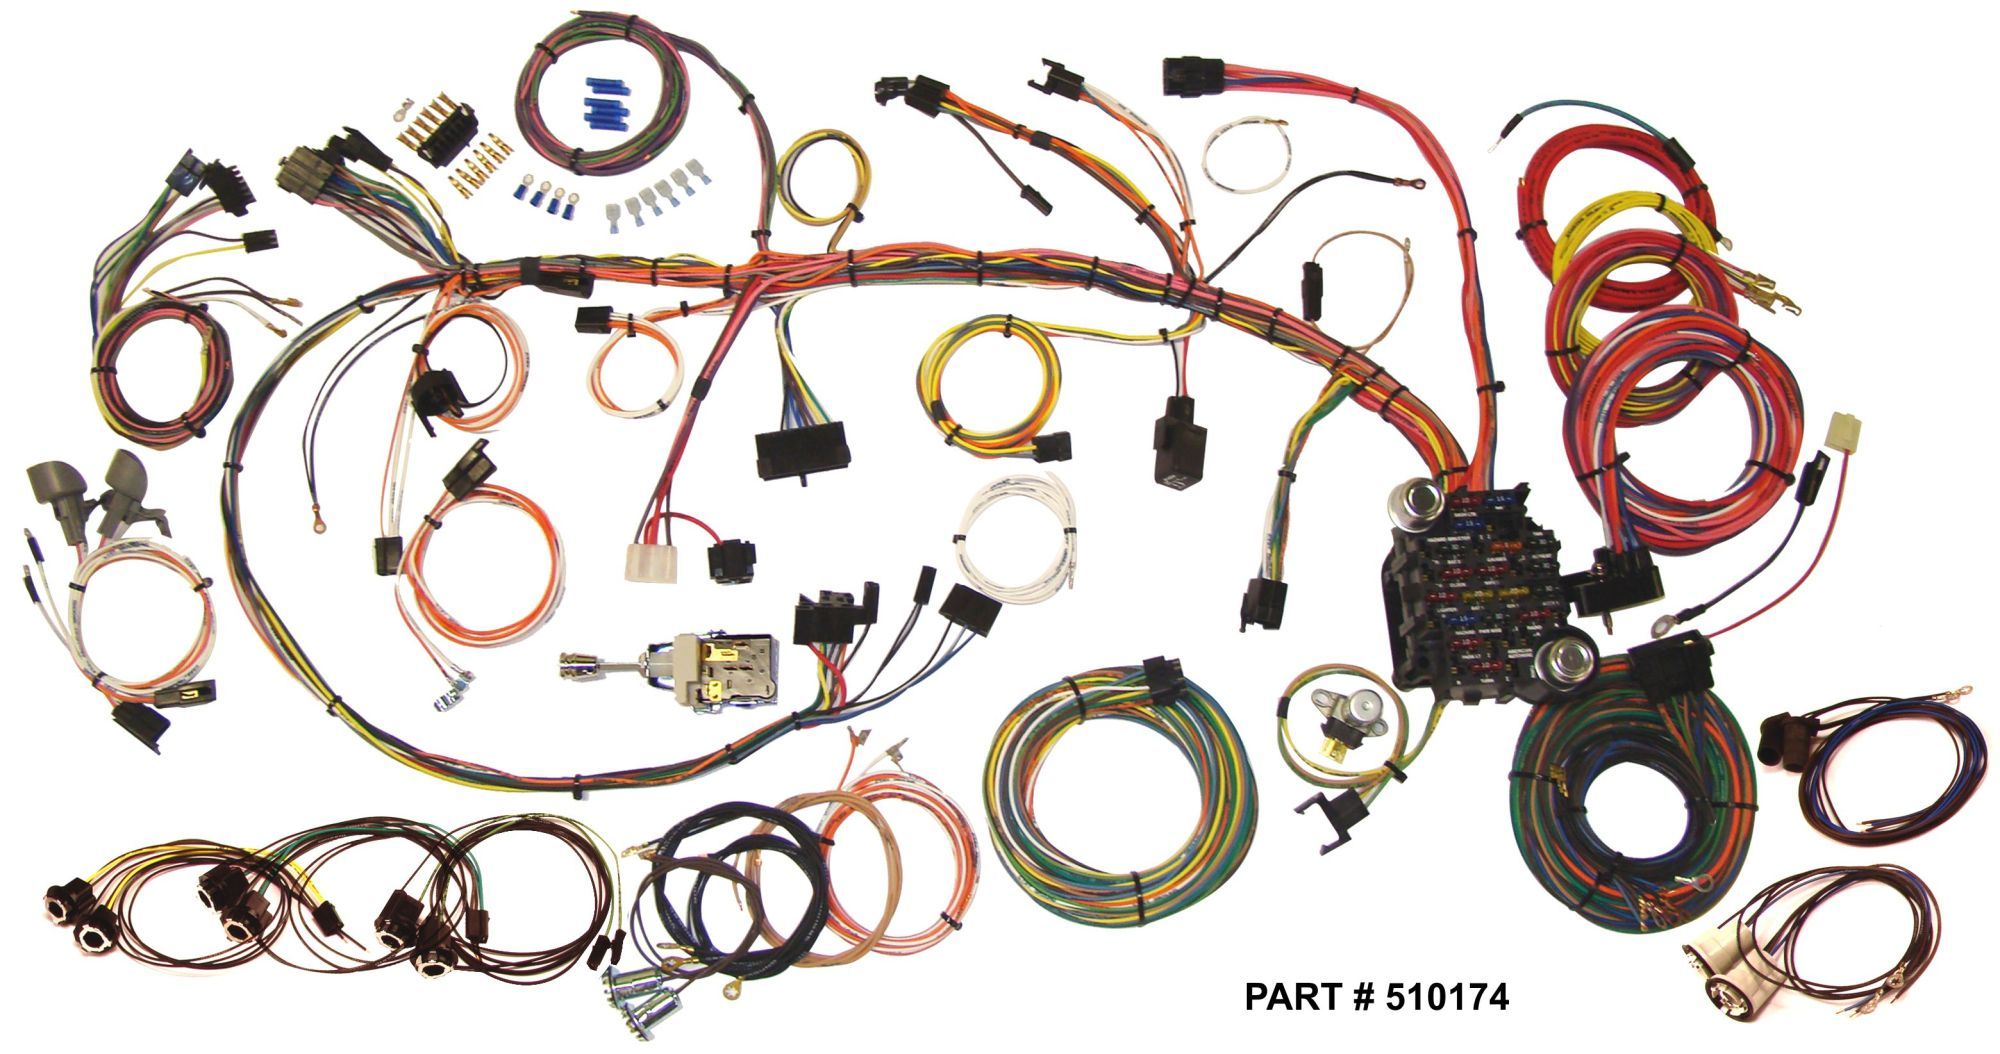 hight resolution of 1970 1973 pontiac firebird restomod wiring system 1973 pontiac firebird wiring harness get free image about wiring